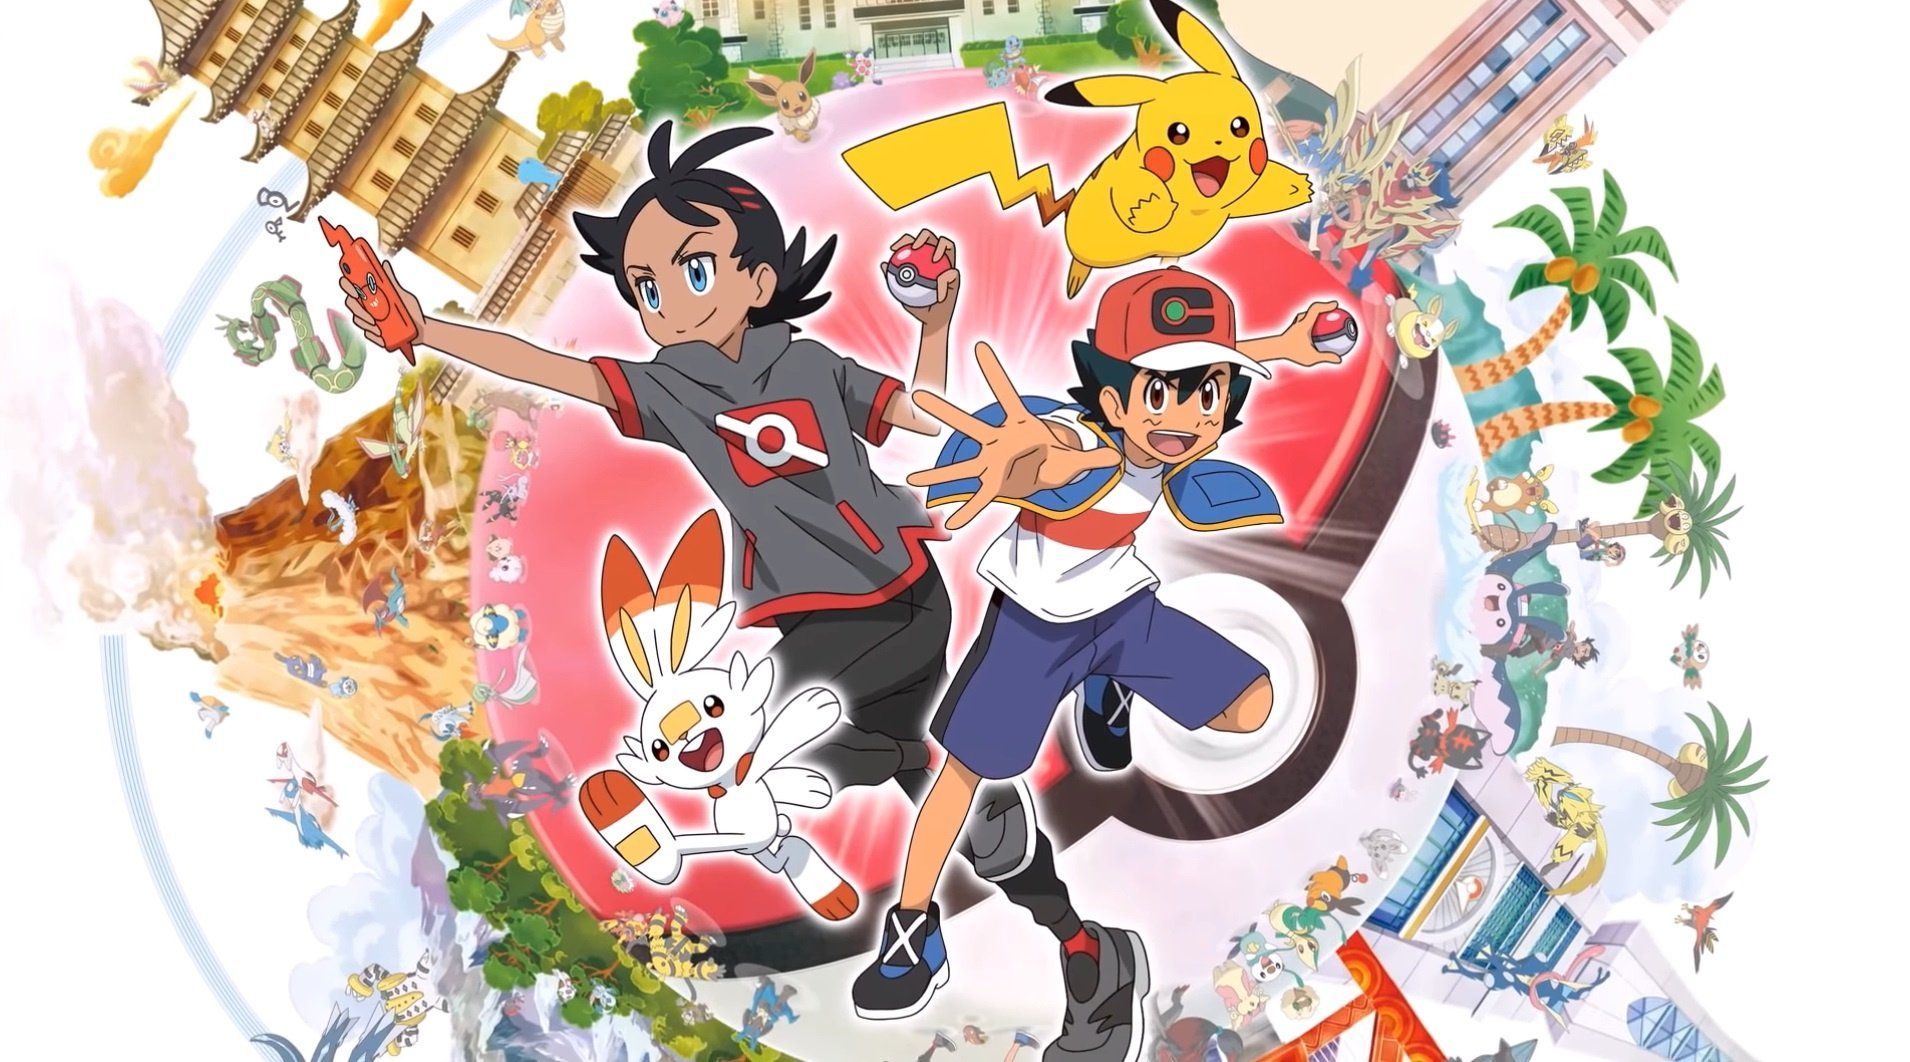 Video: Check Out Ash And Pikachu In The New Pokémon Anime Series